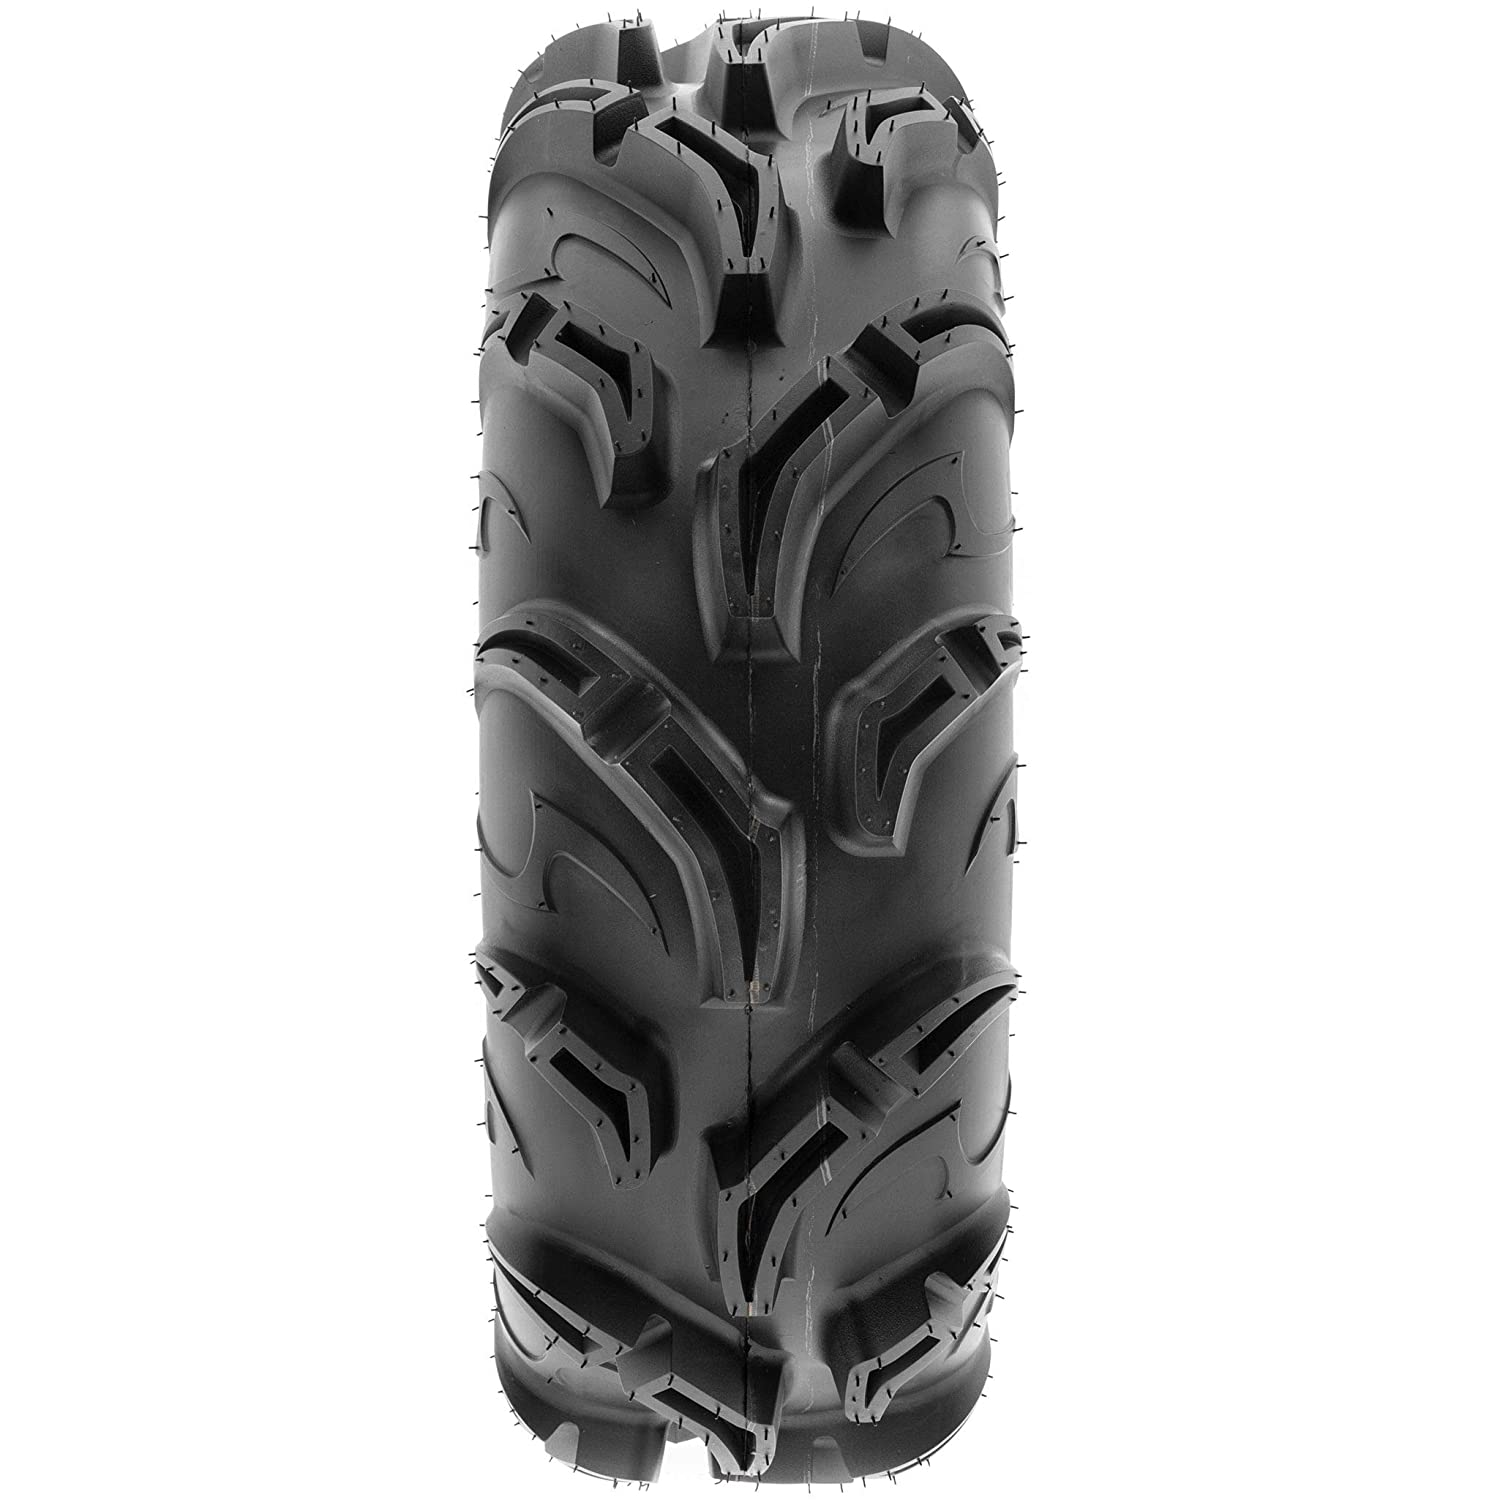 Set of 4 SunF Mud Trail Replacement ATV UTV 6 Ply Tires 27x9-14 /& 27x11-14 Tubeless A048,